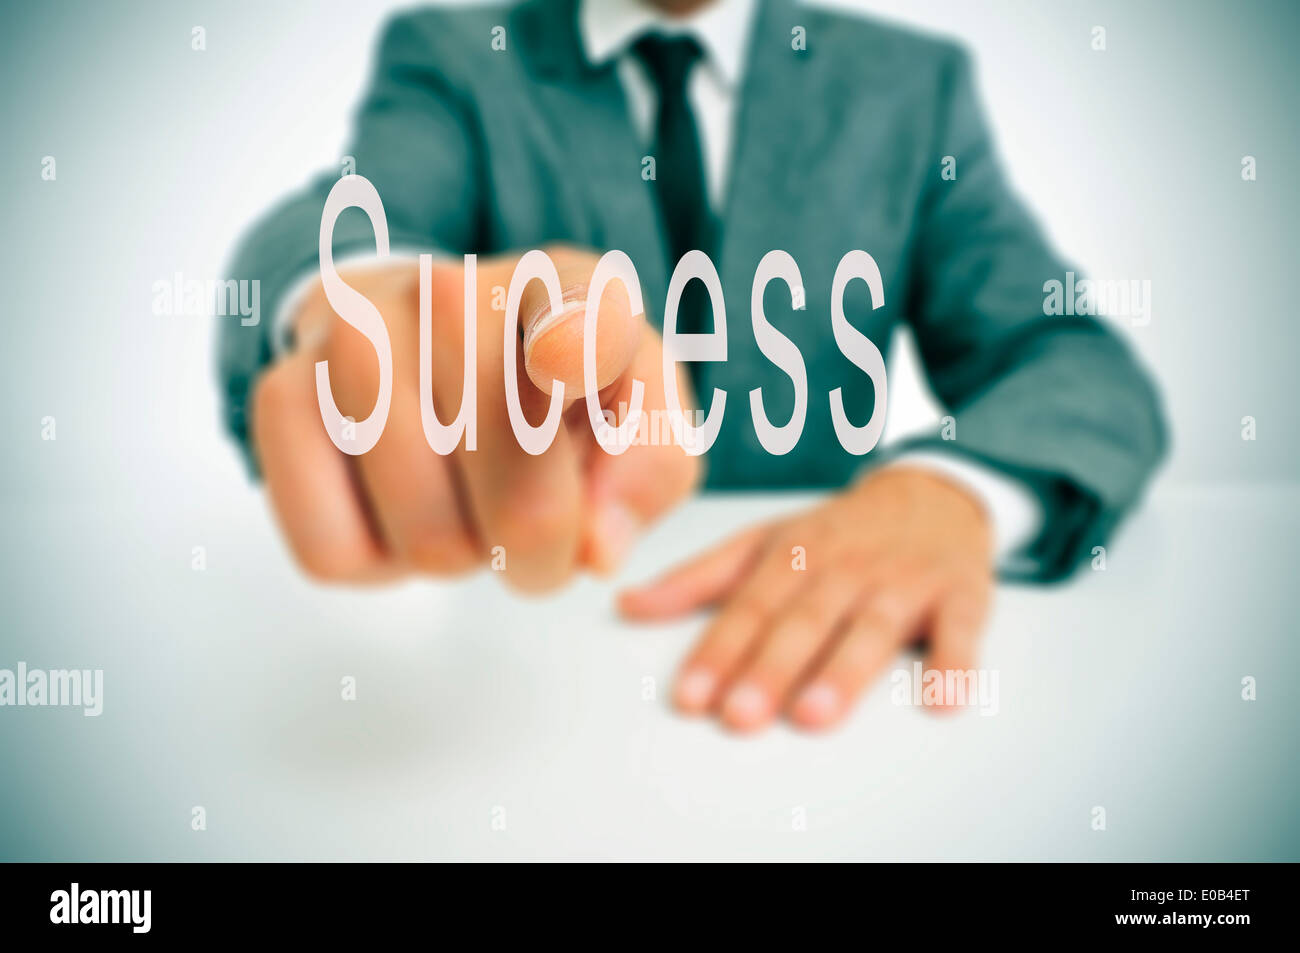 businessman sitting in a desk pointing the finger to the word success written in the foreground - Stock Image